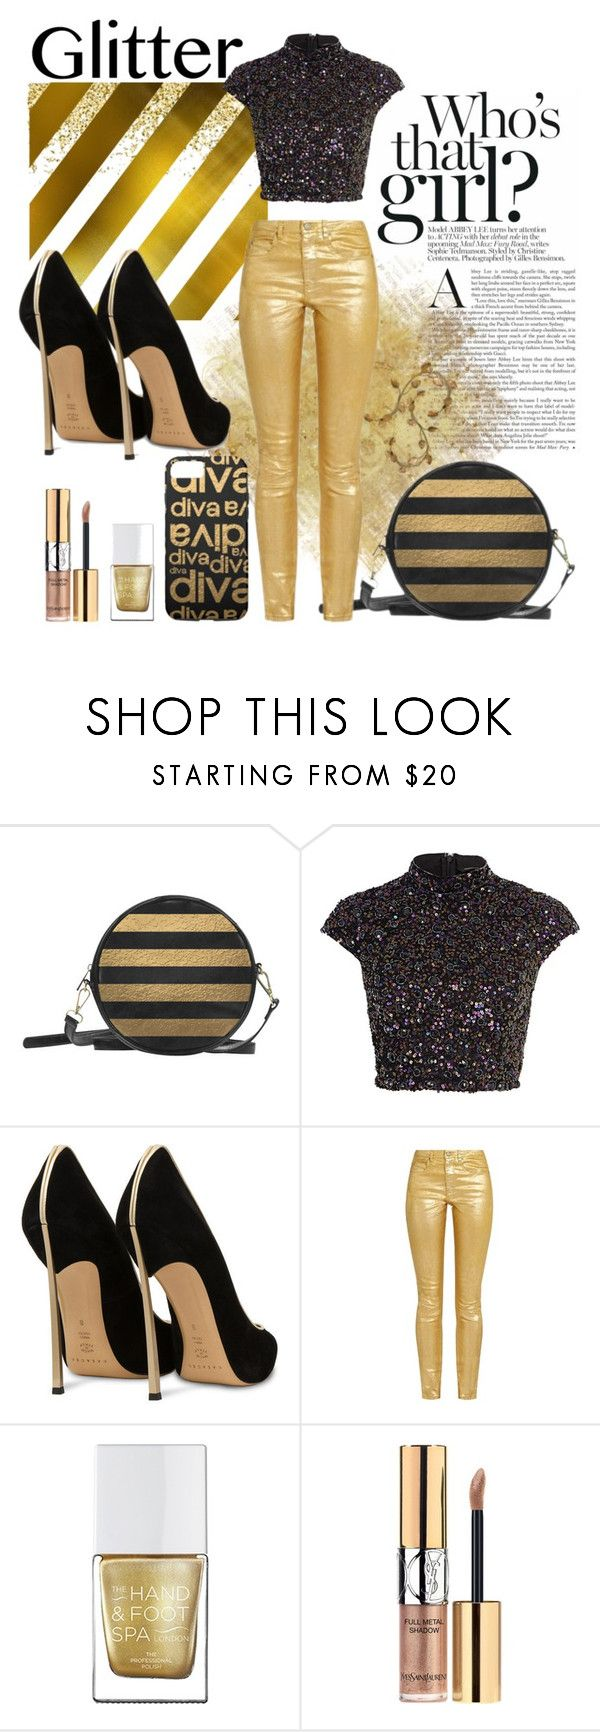 """""""Glitter, Darling!"""" by colormegirly ❤ liked on Polyvore featuring River Island, Casadei, The Hand & Foot Spa, Yves Saint Laurent, handbags, fashionset and polyvoreset"""